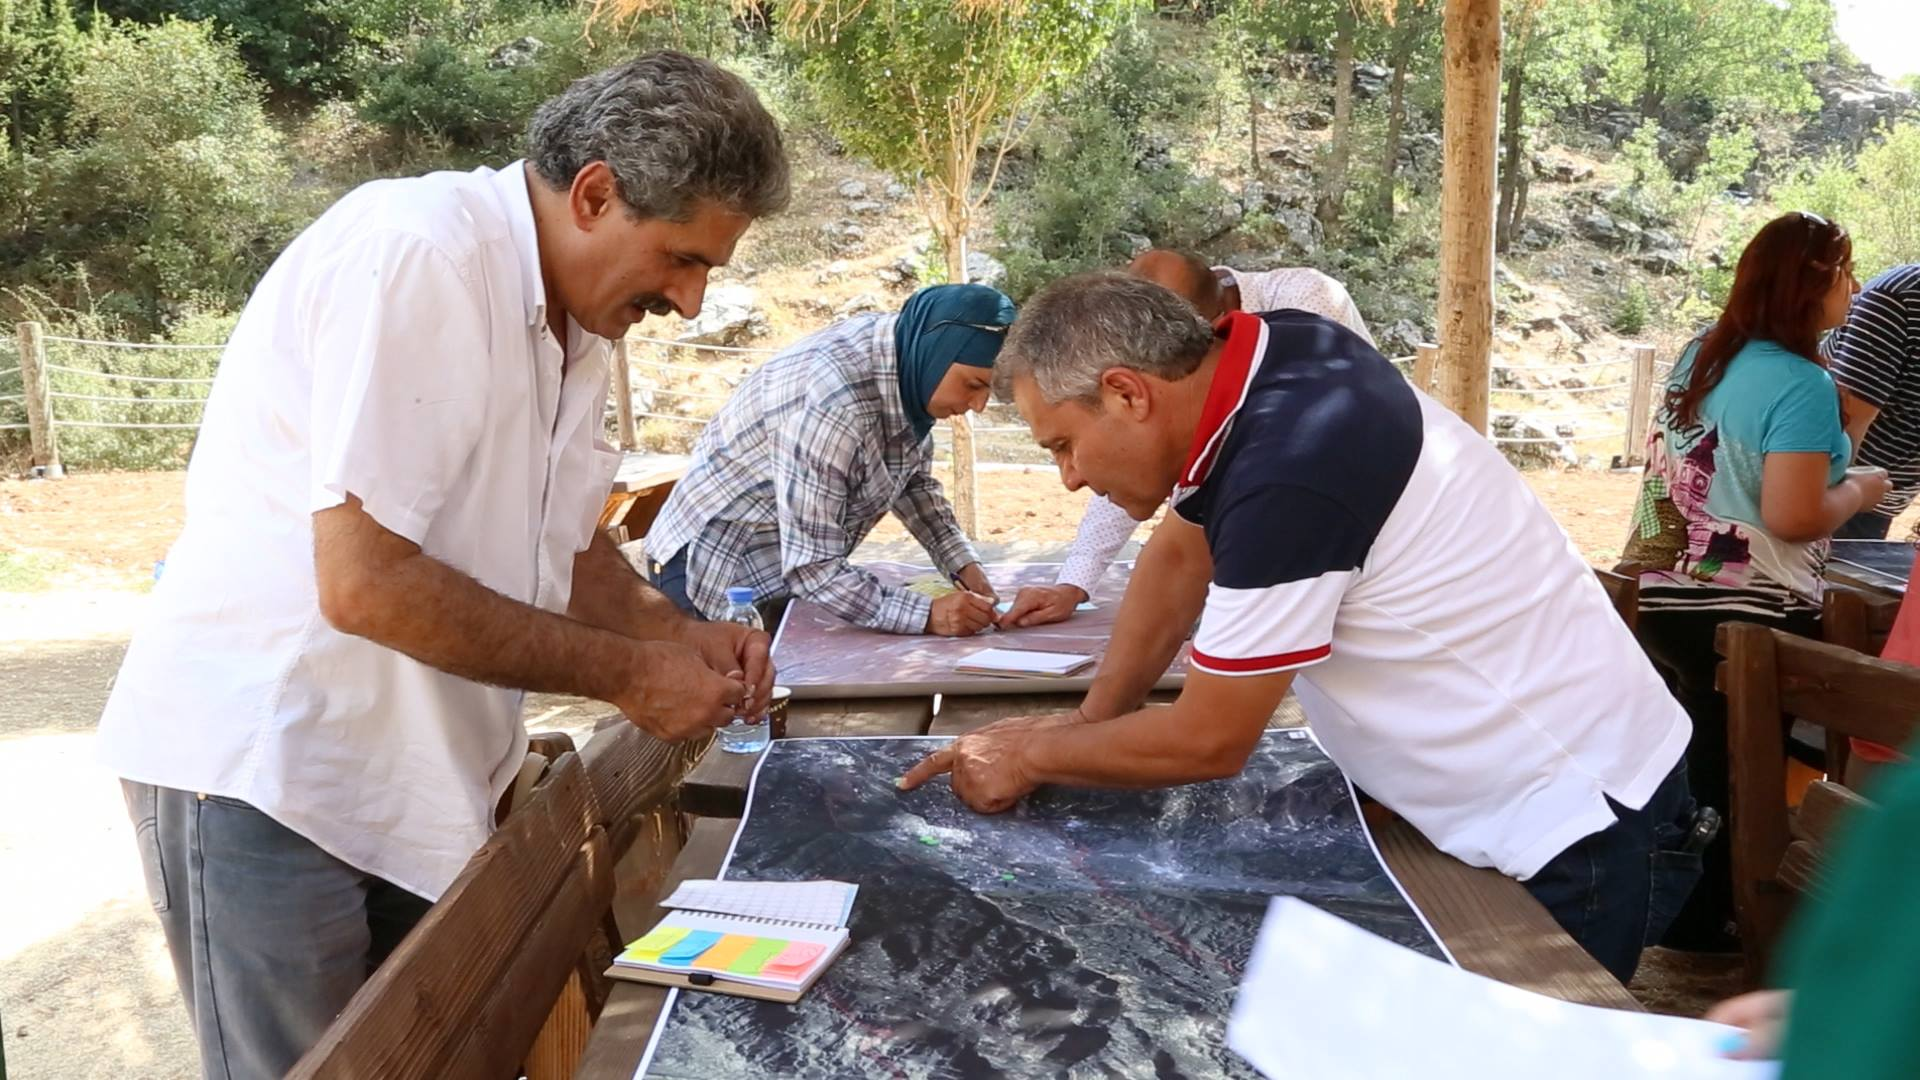 Group of people studying maps on open-air tables (Courtesy of the Lebanon Reforestation Initiative)